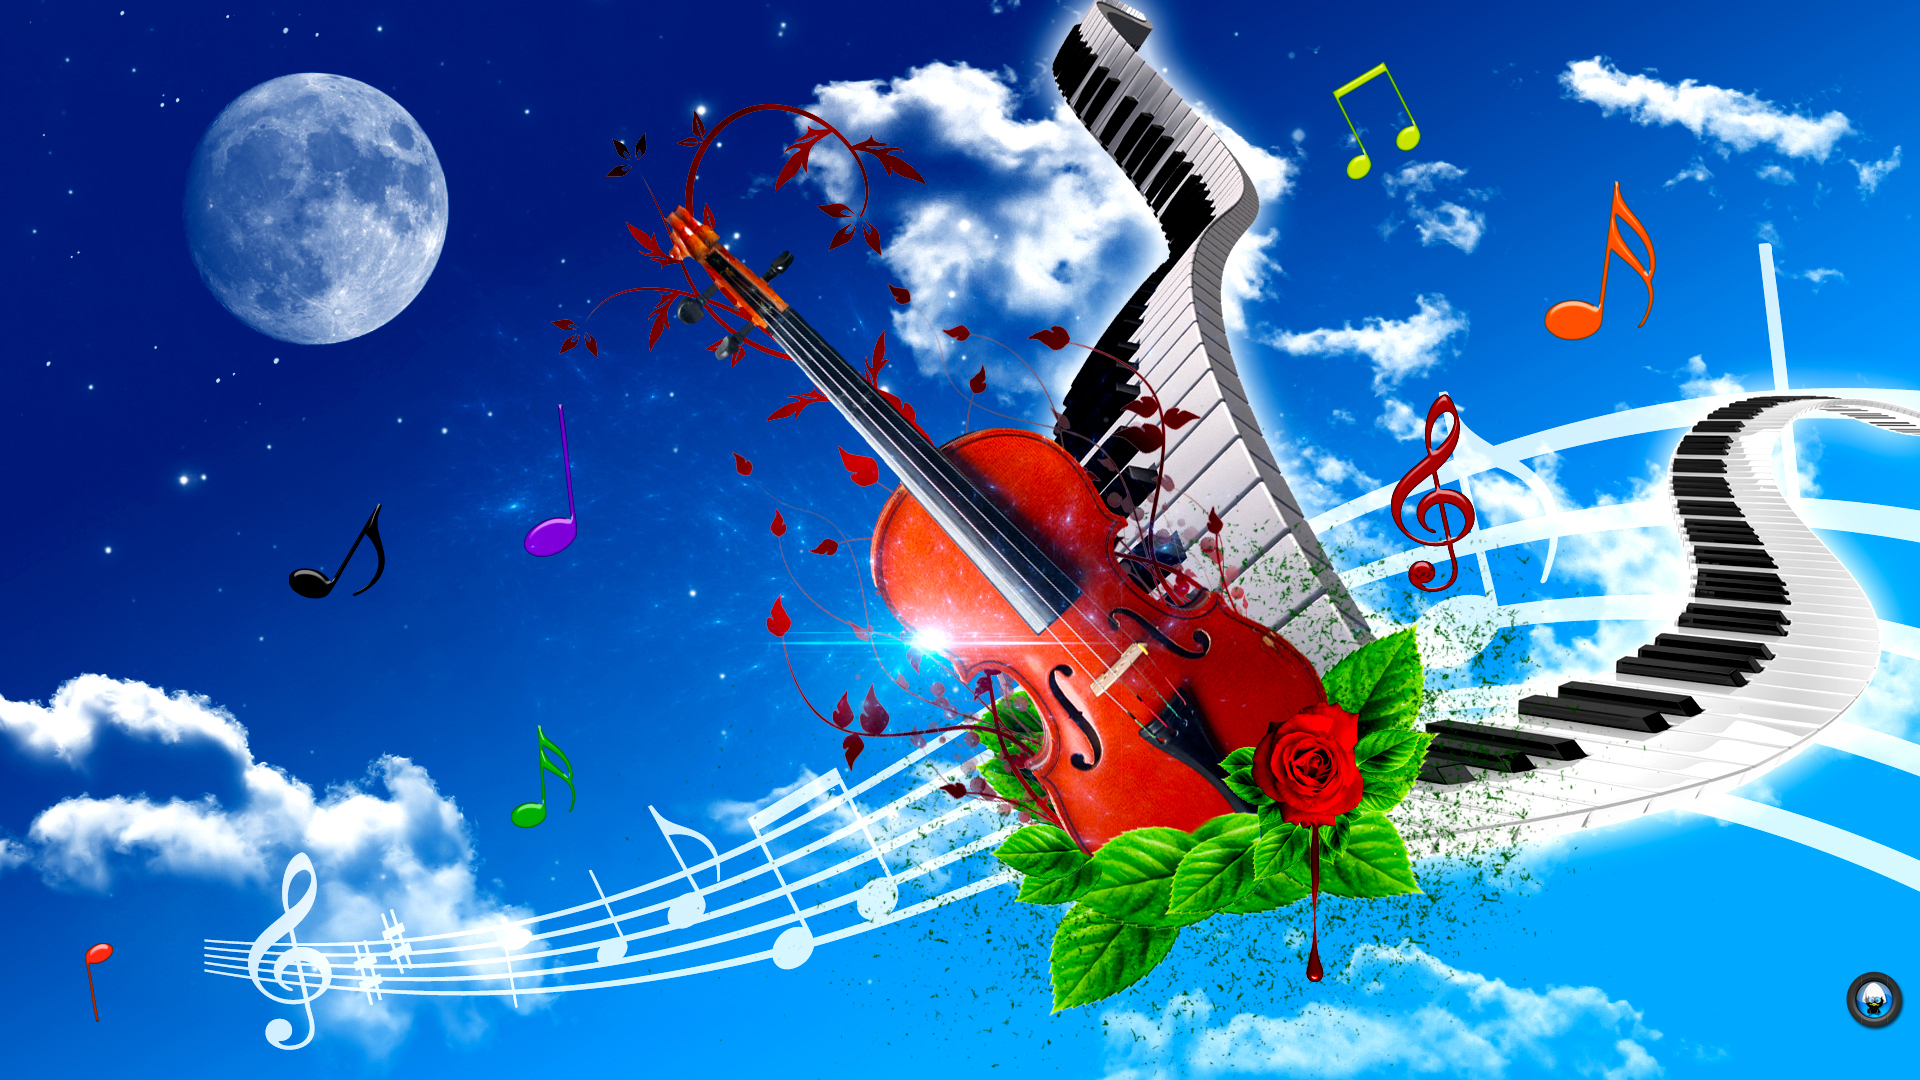 Violin And Piano Art Tone Wallpaper HD